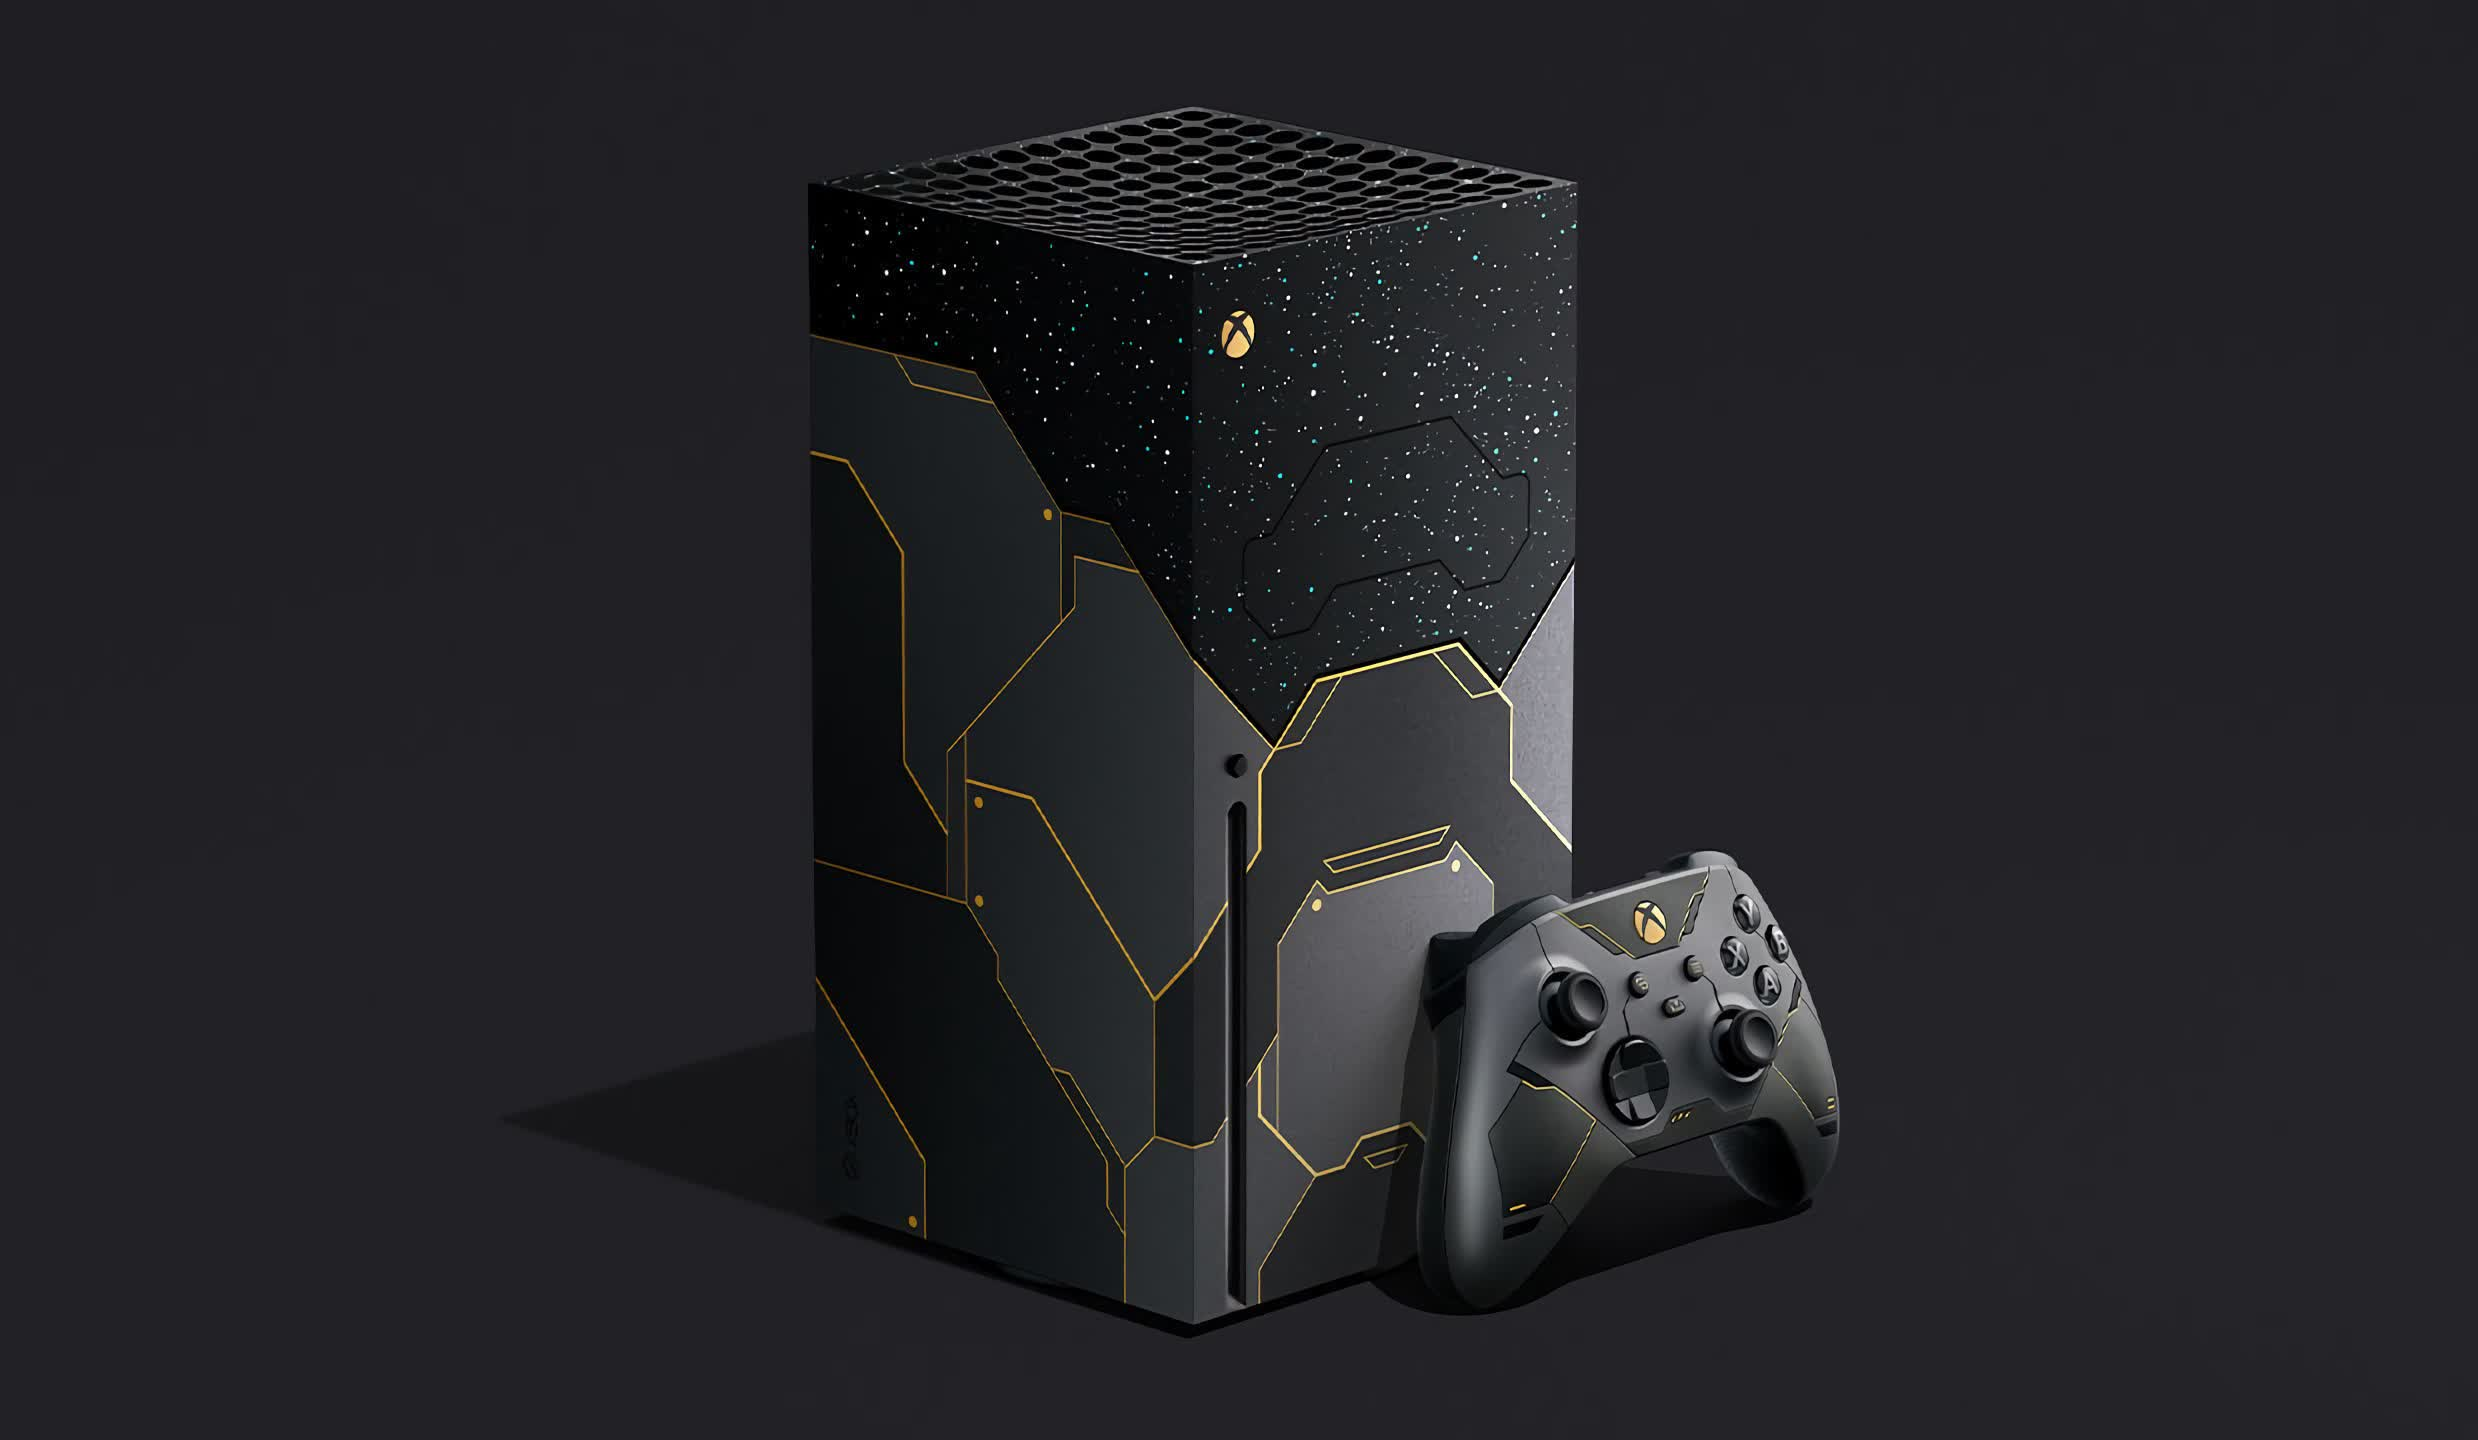 Microsoft's 'very' limited edition Halo Infinite Xbox Series X is already impossible to get at a reasonable price